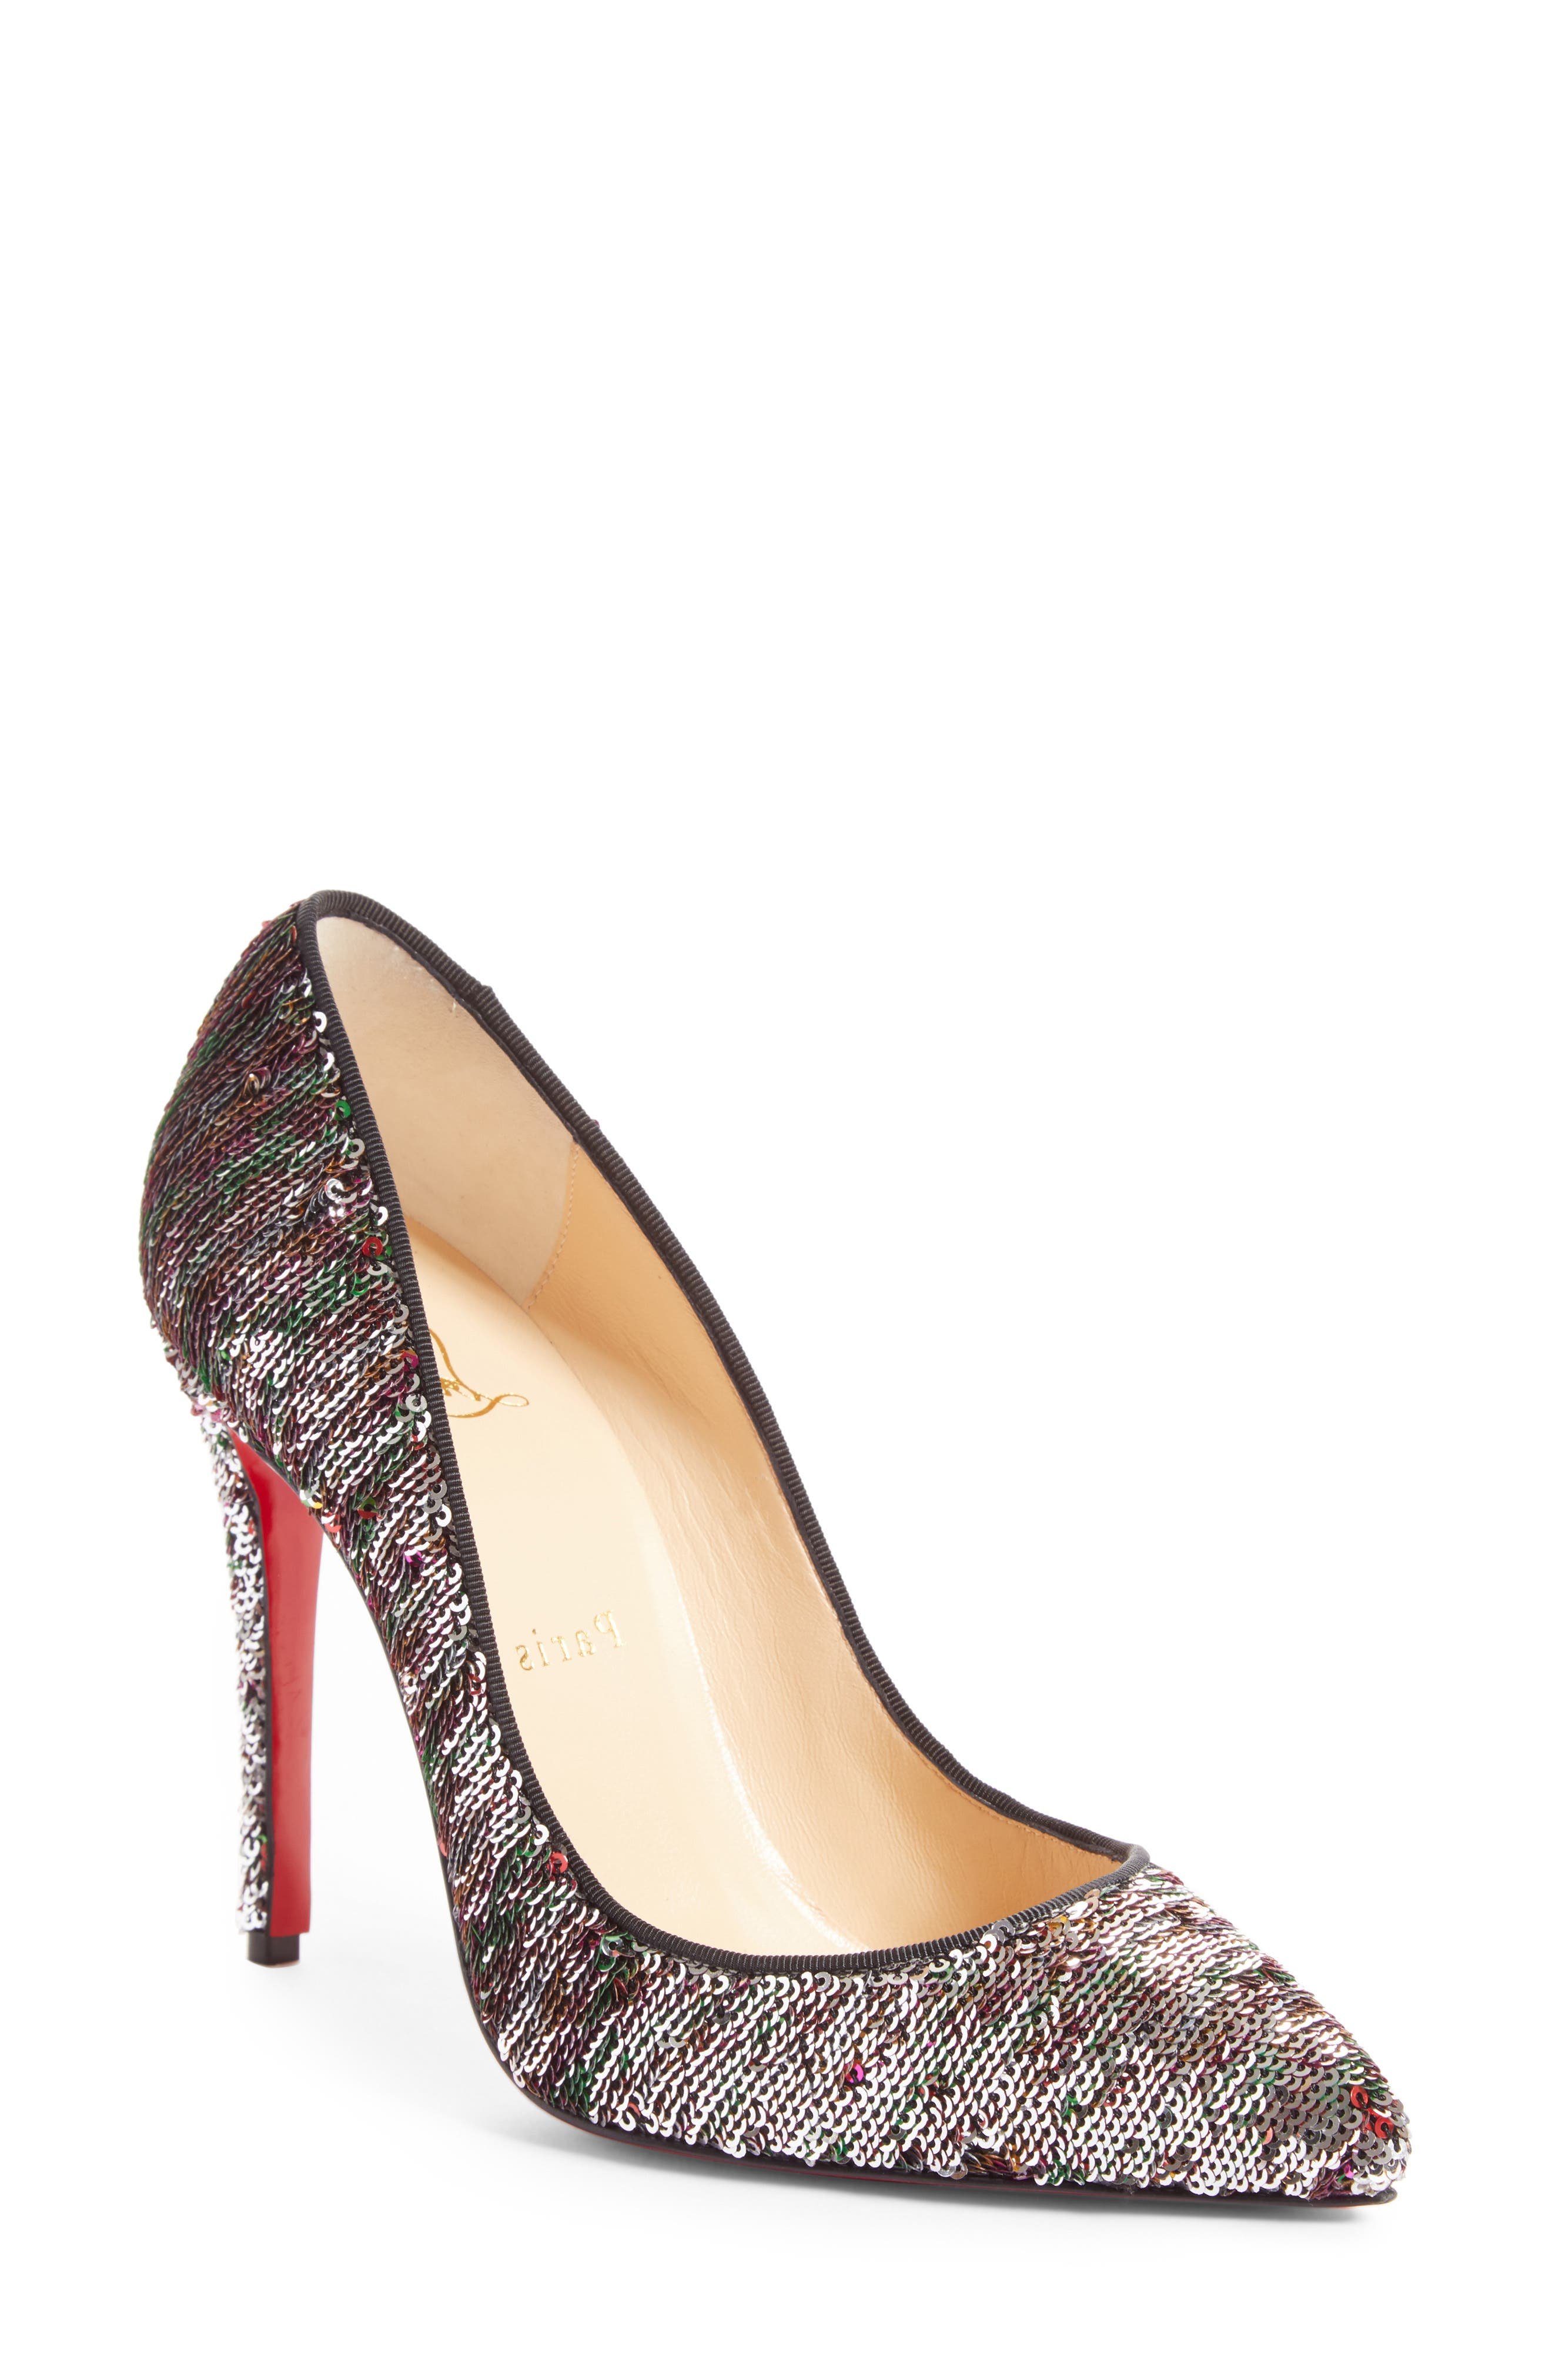 Pigalle Follies Sequin Pointy Toe Pump,                         Main,                         color, 040